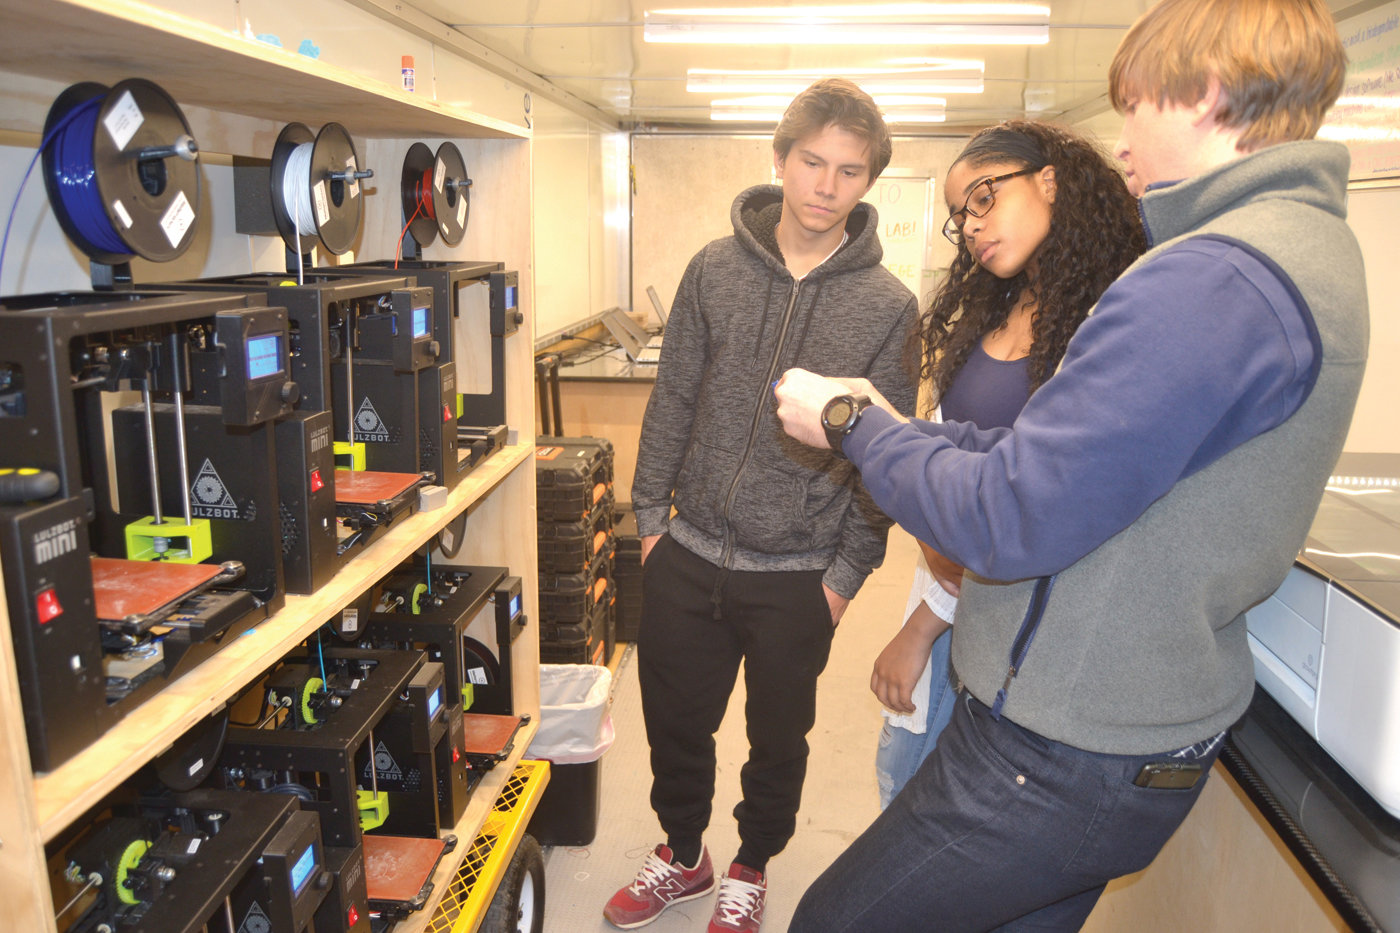 TALKING TECH: Seth Wiseman shows Myshelle Barron and Connor Agnew how a 3D printer is used to produce figurines and more.